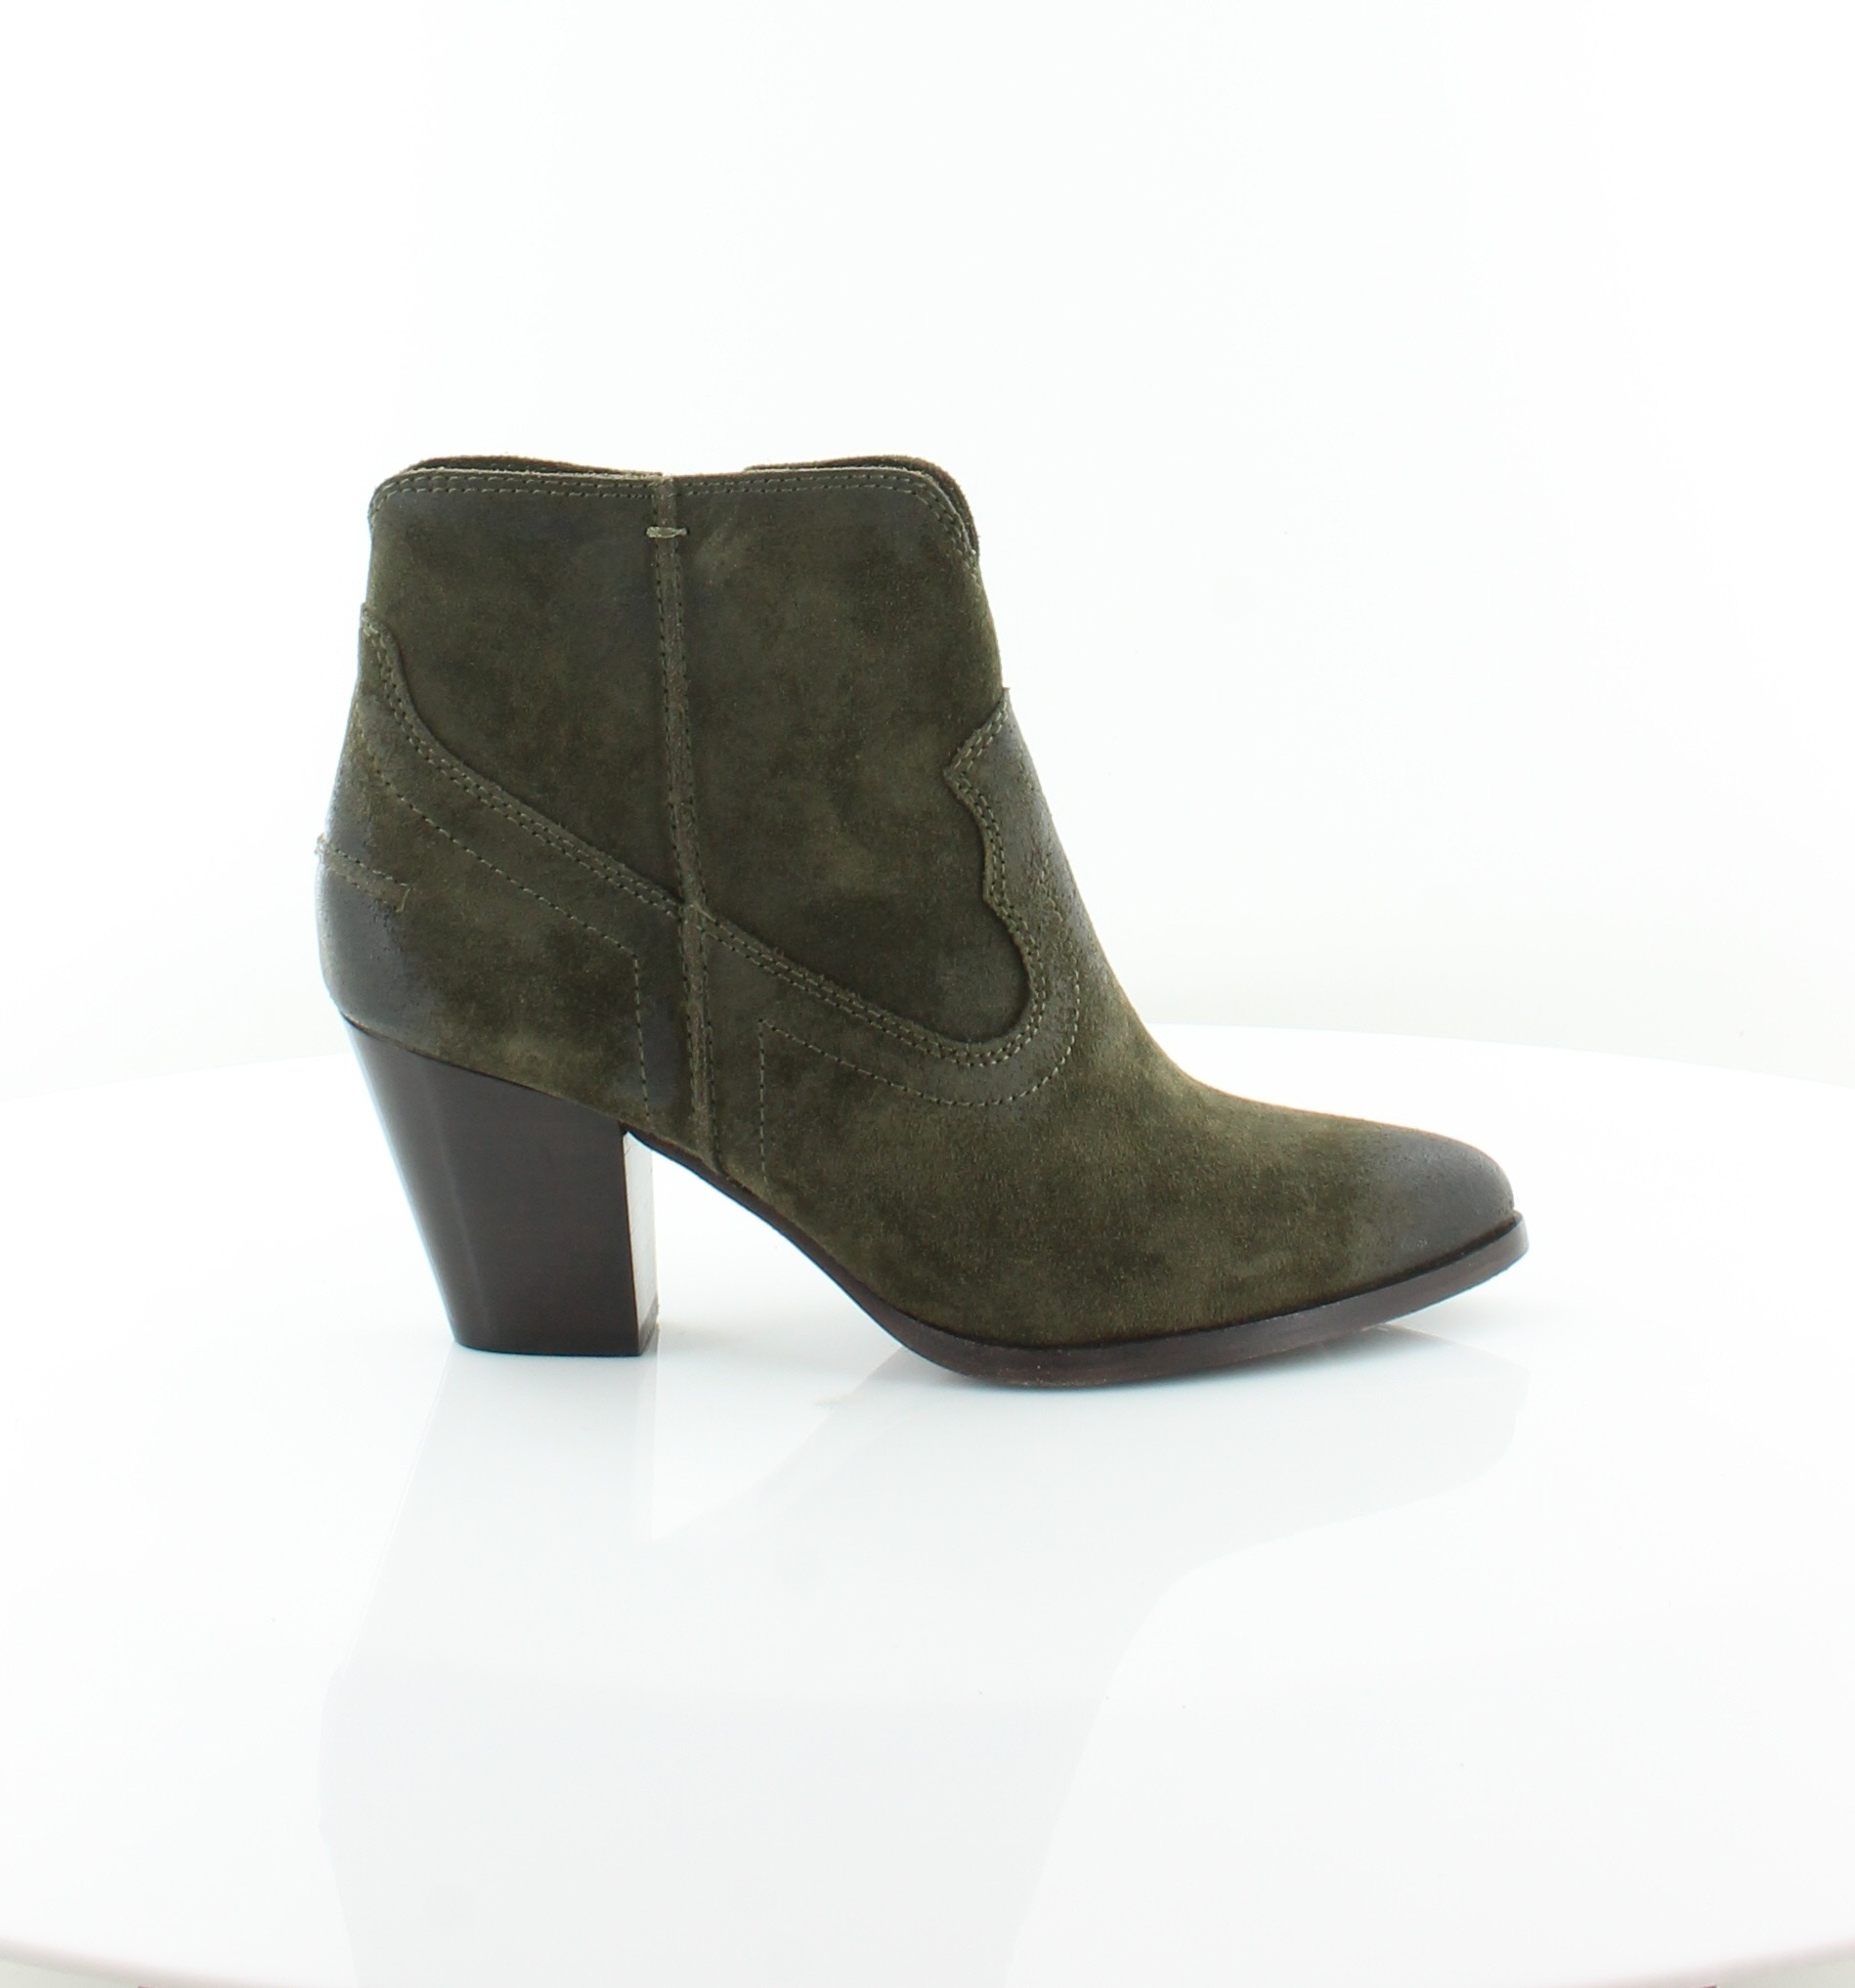 Frye Renee Green Womens Shoes Size 5.5 M Boots MSRP $298